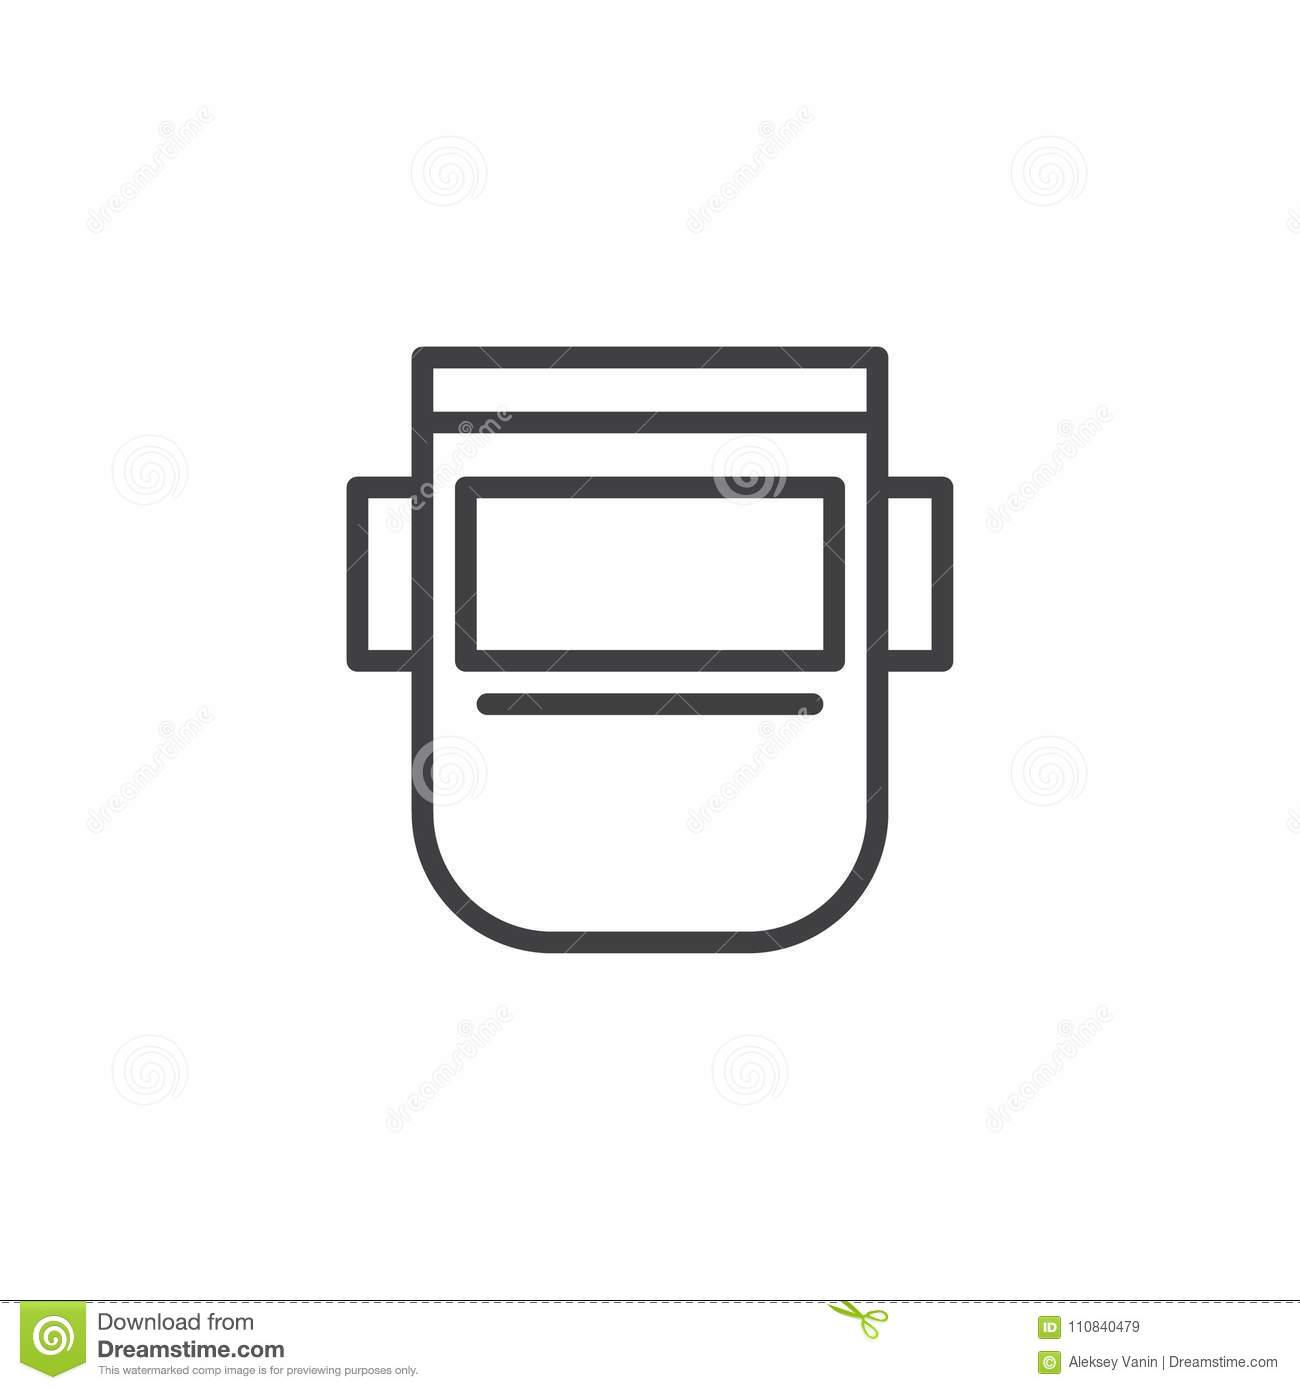 Welding Mask Diagram Wiring Libraries Helmet Outline Icon Stock Vector Illustration Of Safetywelding